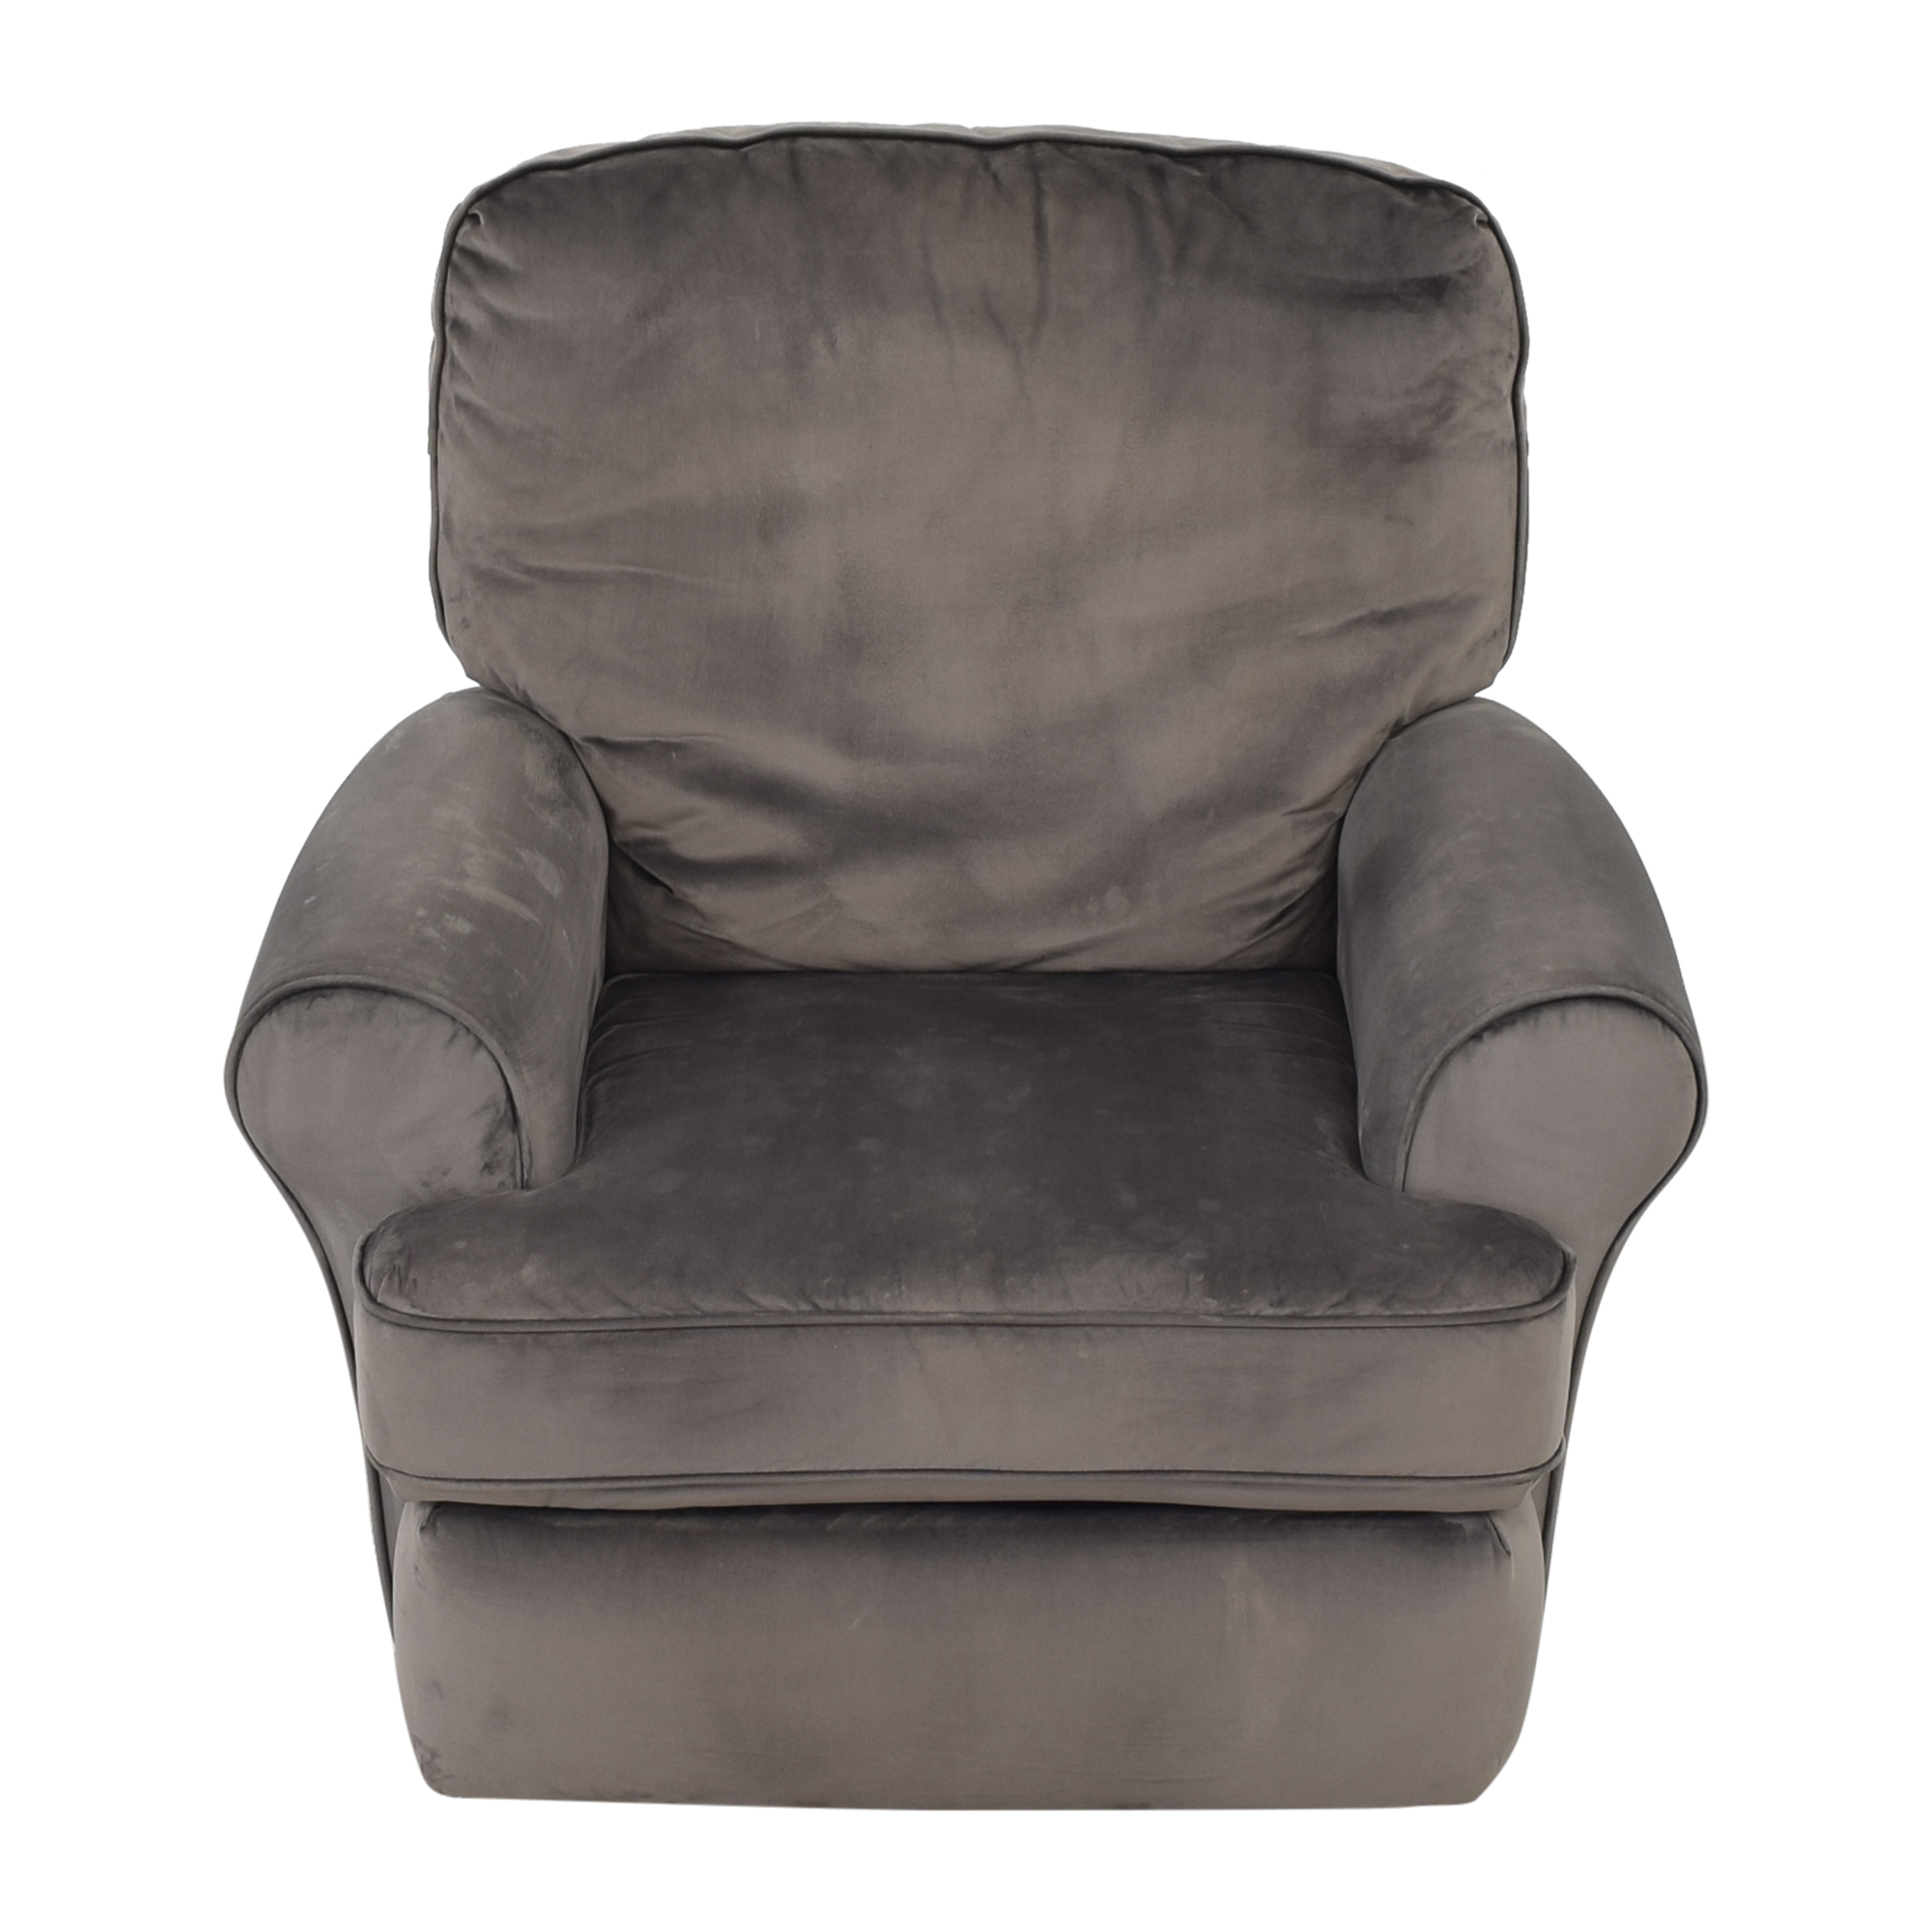 buy Best Chairs Best Chairs Tryp Swivel Glider Recliner online